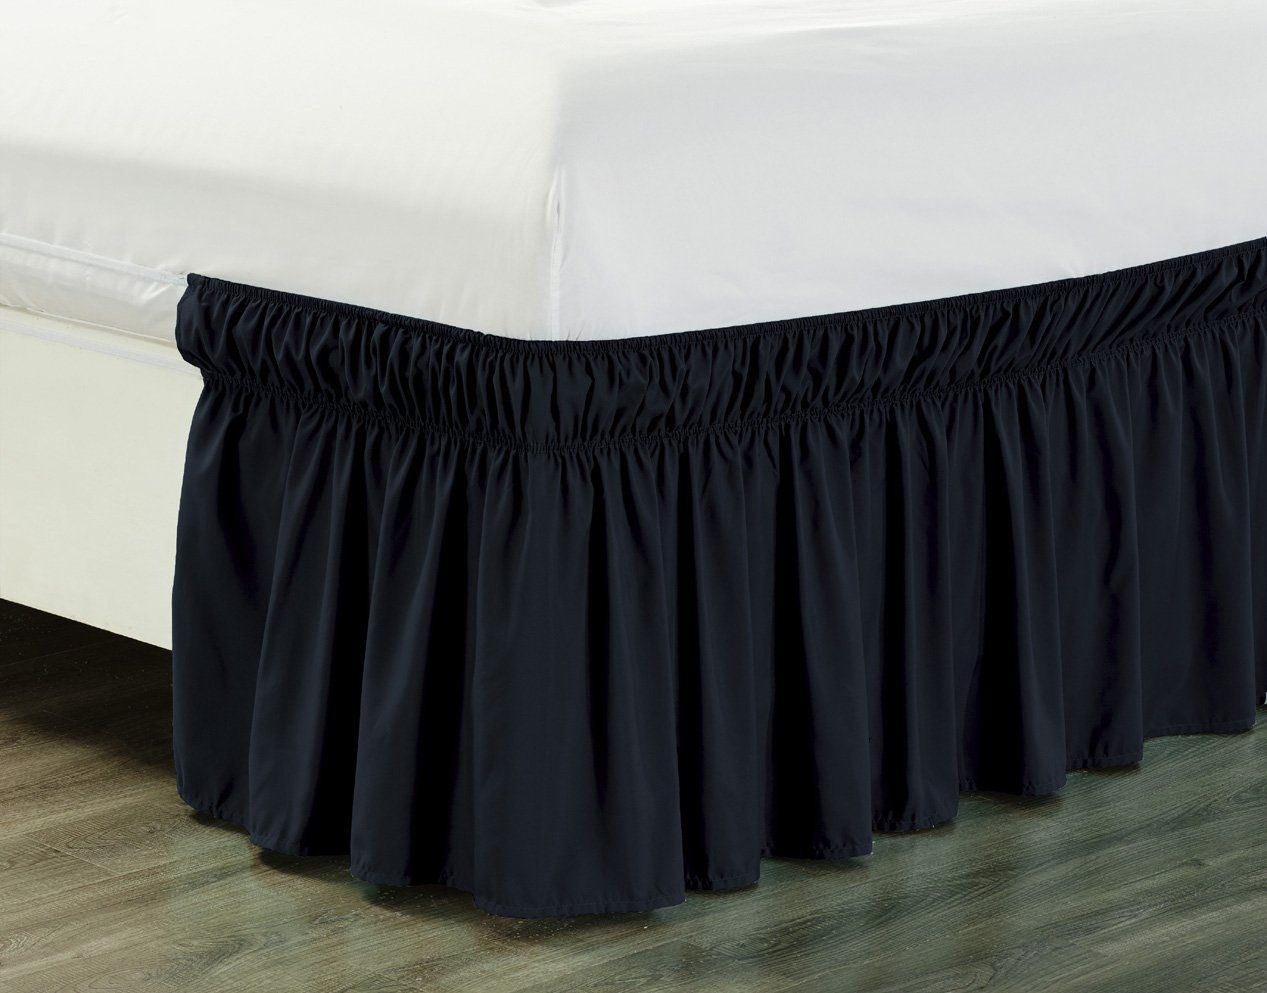 Wrap Around 18'' inch fall BLACK Ruffled Elastic Solid Bed Skirt Fits All QUEEN, KING and CAL KING size bedding High Thread Count Microfiber Dust Ruffle, Silky Soft & Wrinkle Free.